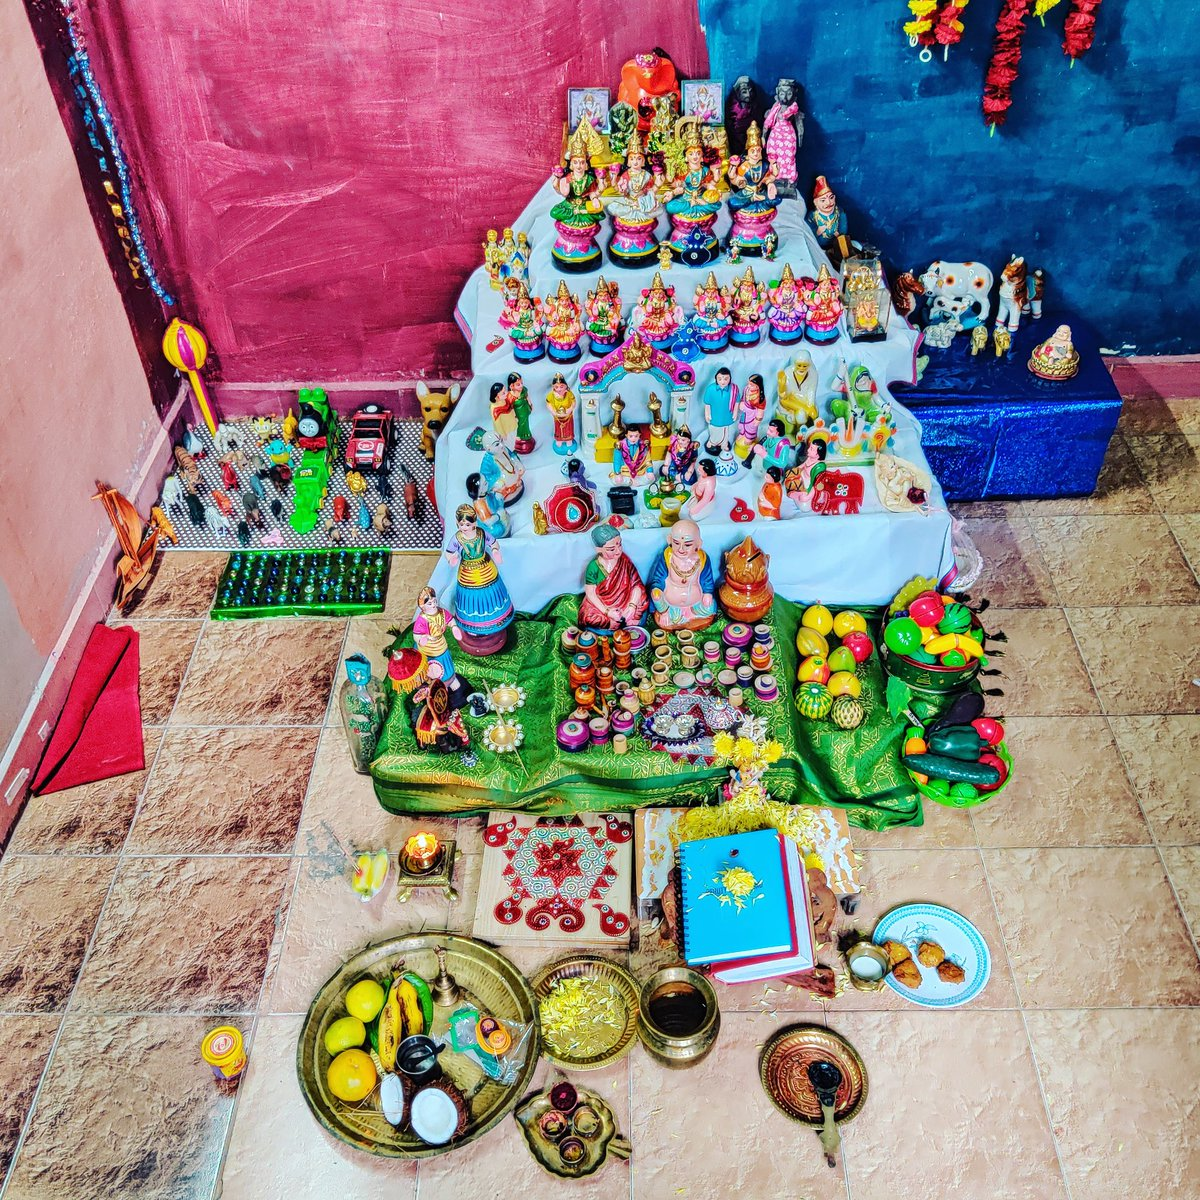 Happy Navratri - Saraswati Pooja @ Home   The Beautiful Golu dolls, the decorations, the toys and the positivity of these 9 days is divine 😇  #Dusshera #Saraswati #Pooja #Hindu #traditional #Golu #Iyer #Bommai #Toys #Decoration https://t.co/fxFA6TmOVX